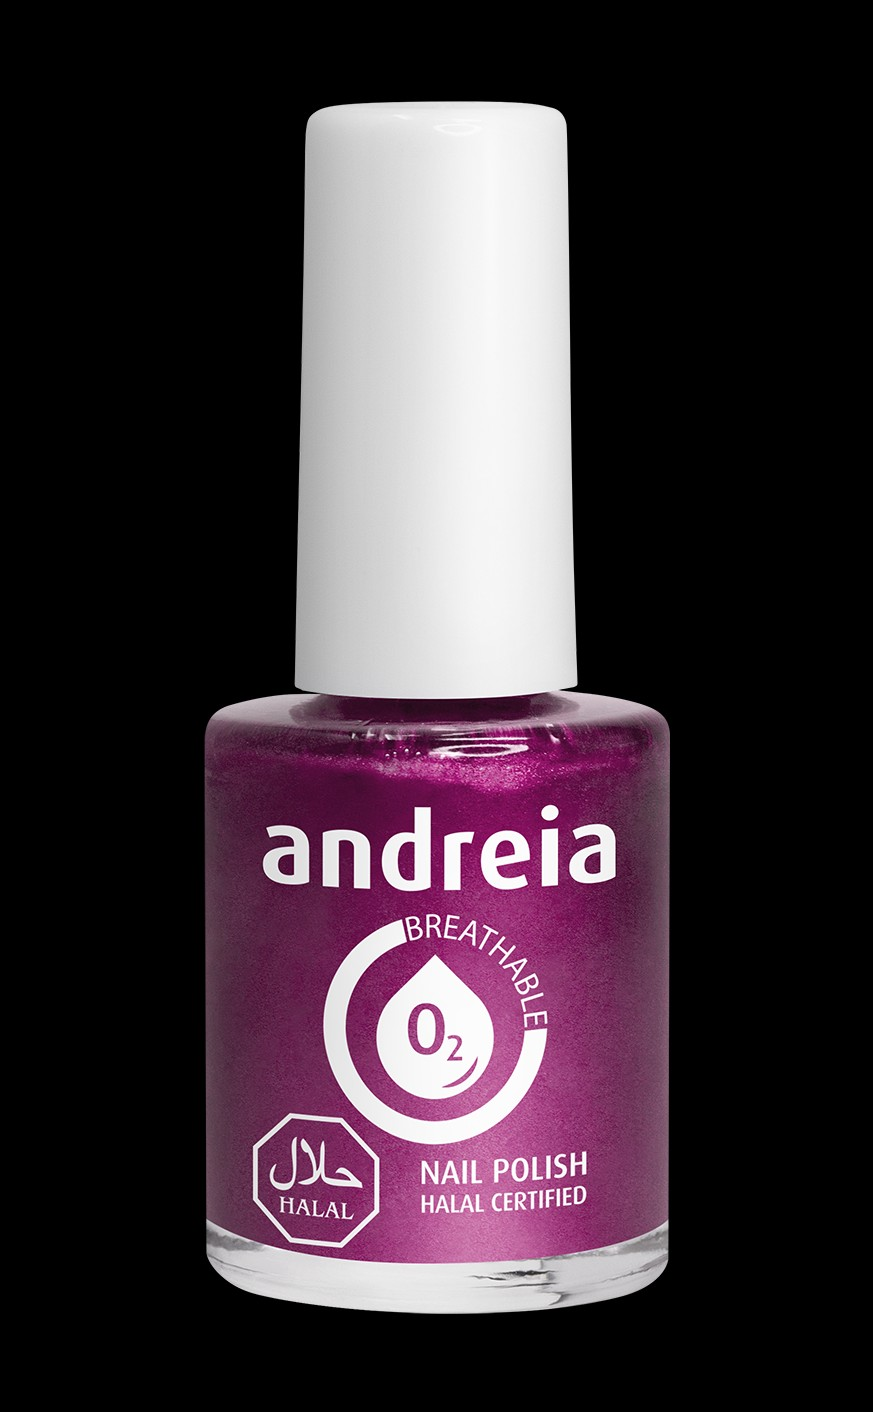 Andreia Professional Ab11 Halal Certified Nail Polish Metallic Pink Andreia Halal Certified Nail Polish Creative Academy